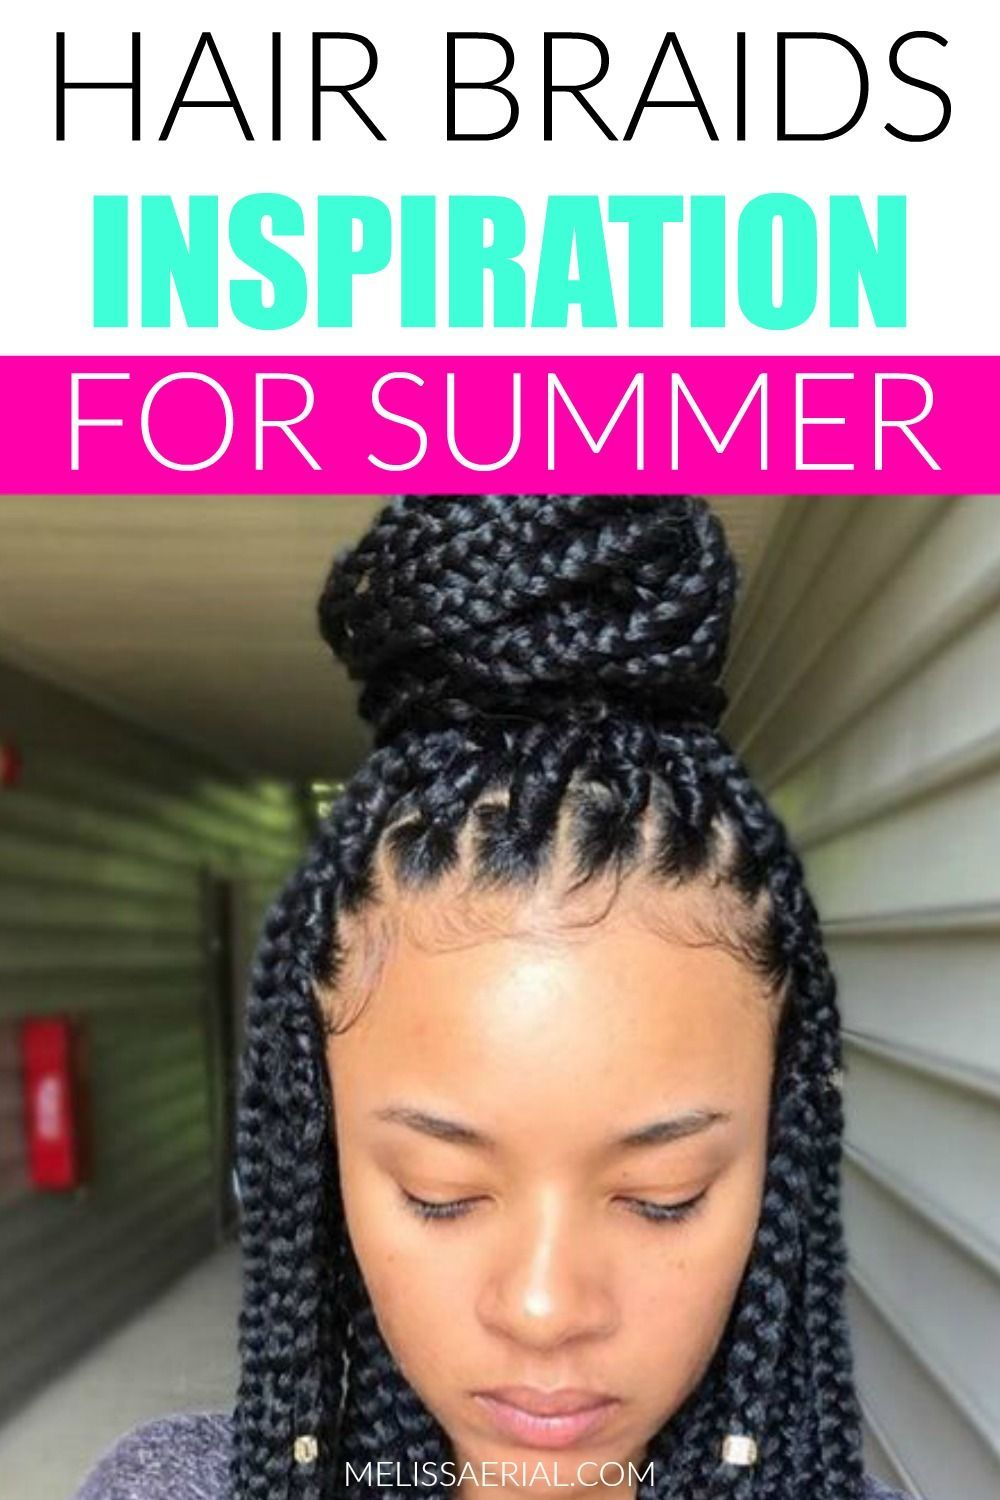 Braid Styles For Natural Hair Growth On All Hair Types For Black Women In 2020 Natural Hair Styles Braids For Black Hair Braided Hairstyles